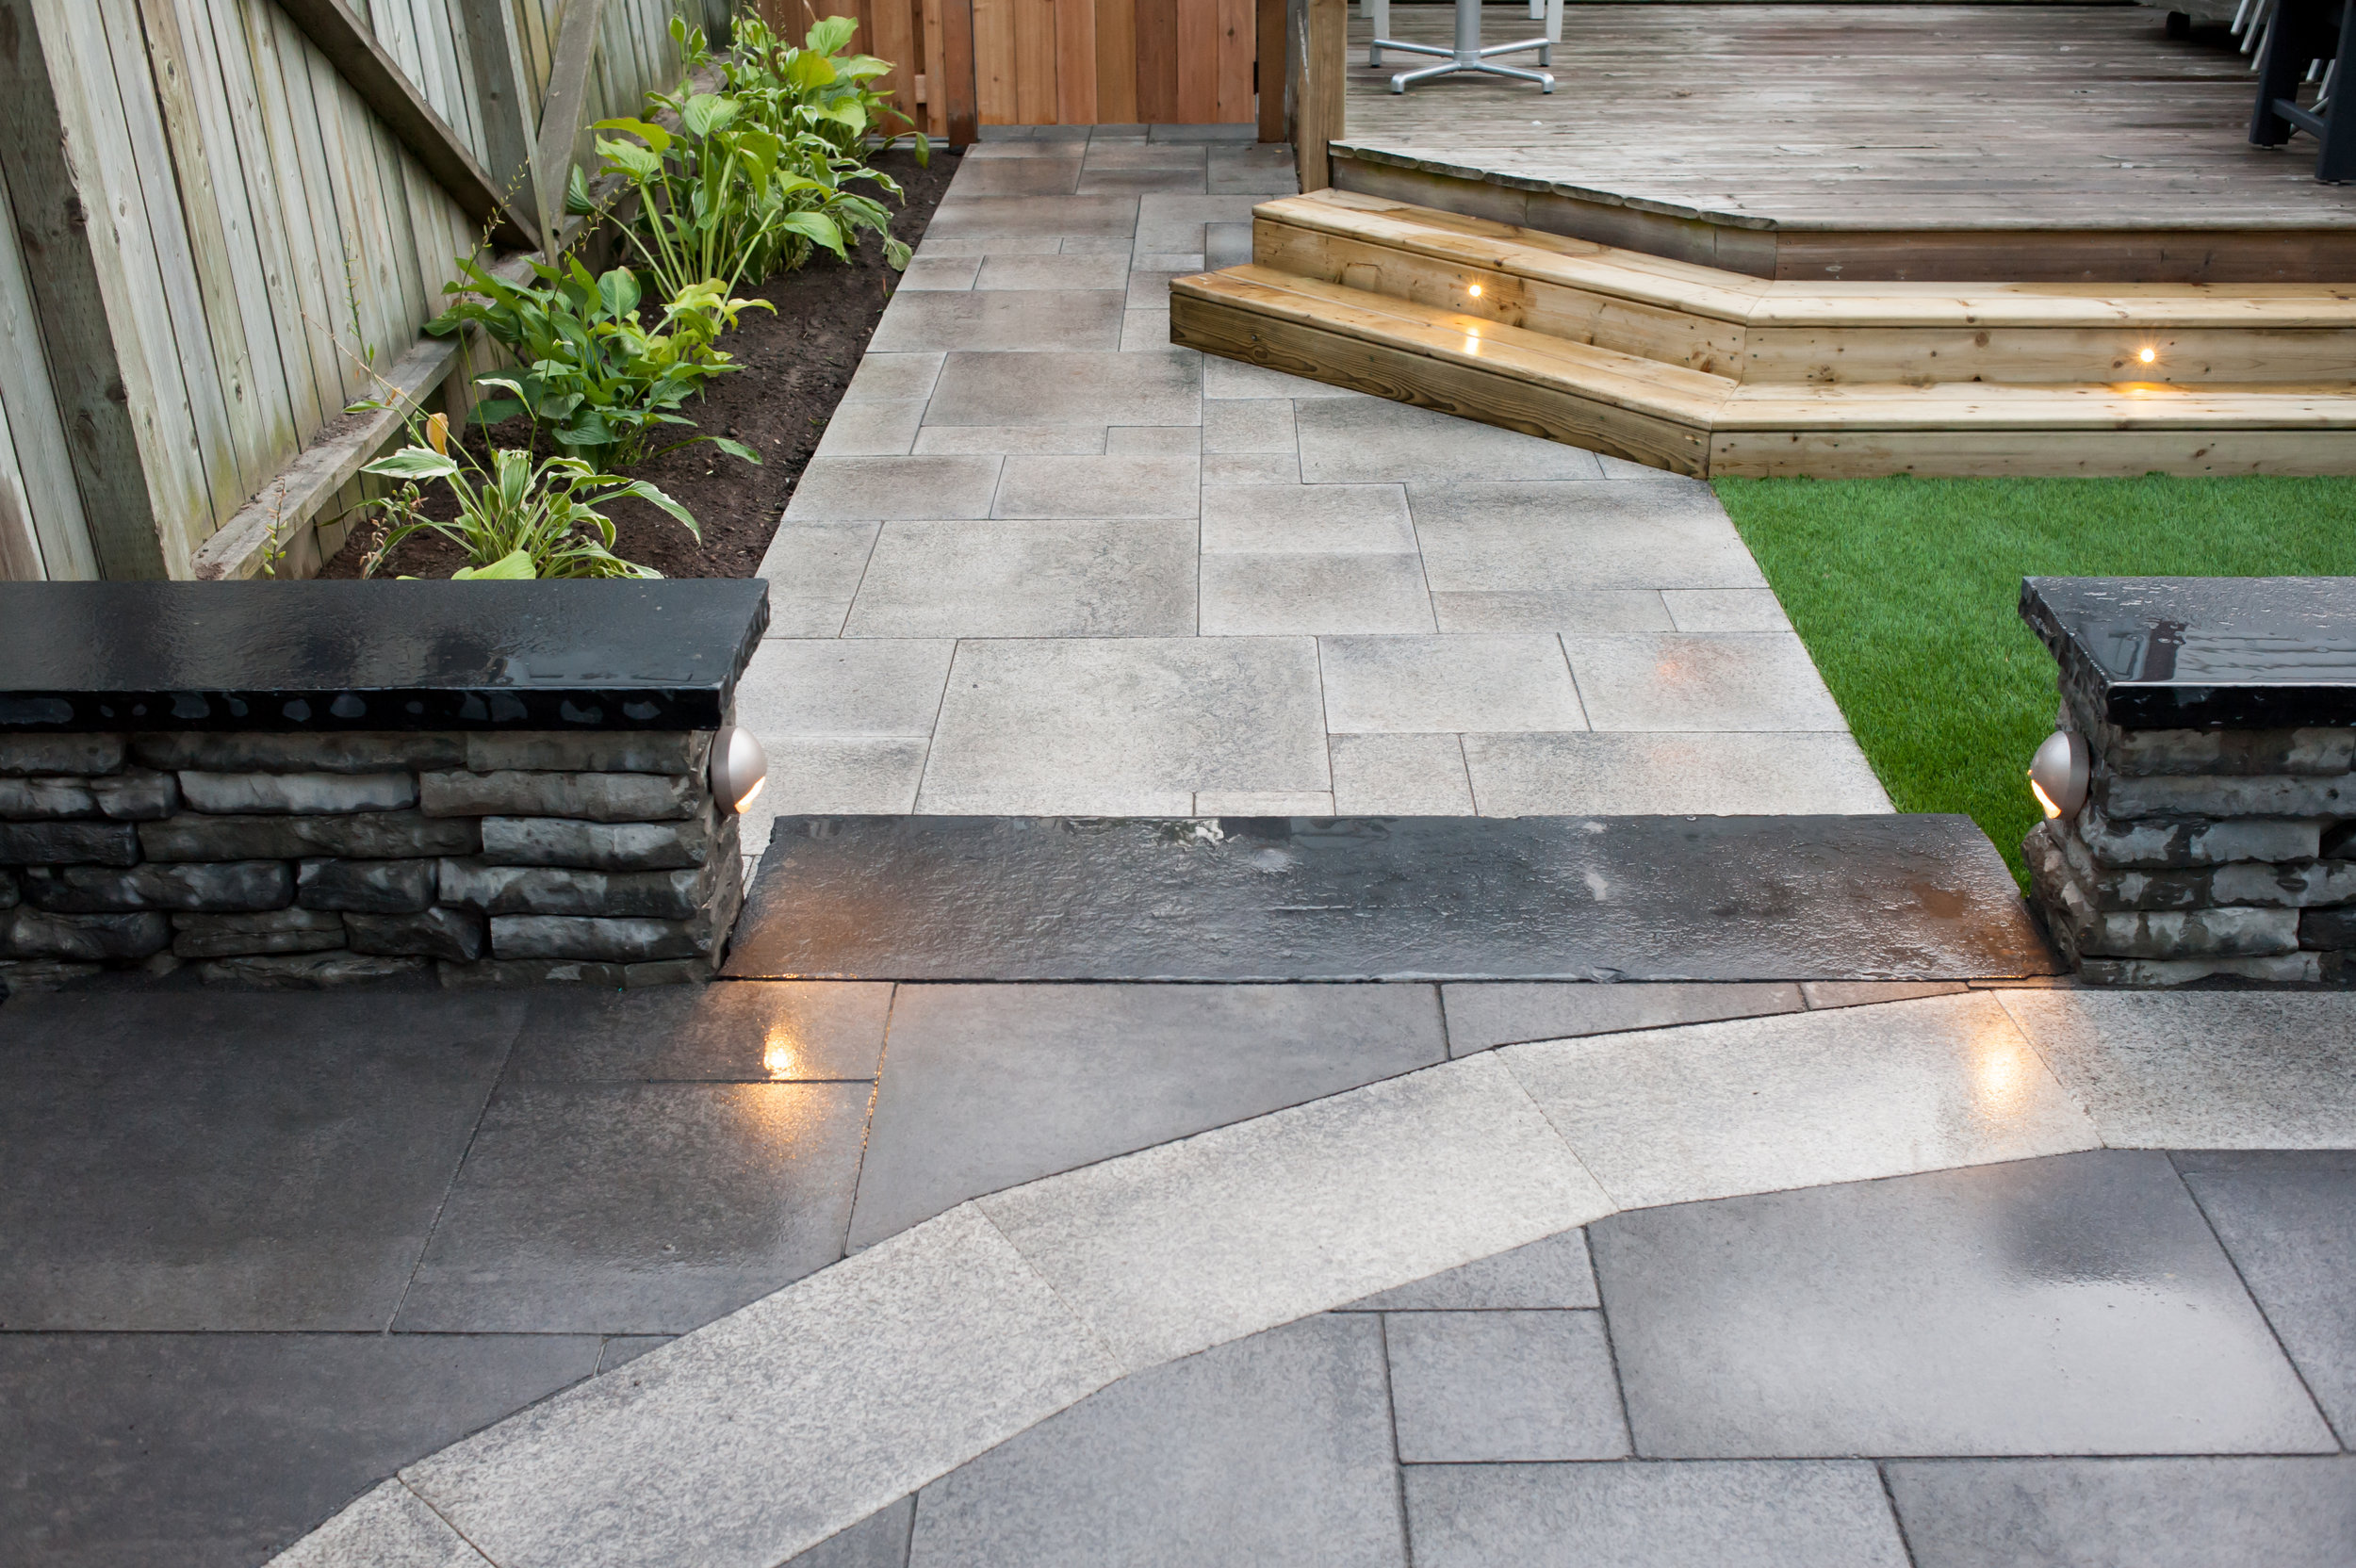 Completed Project - Backyard Detail